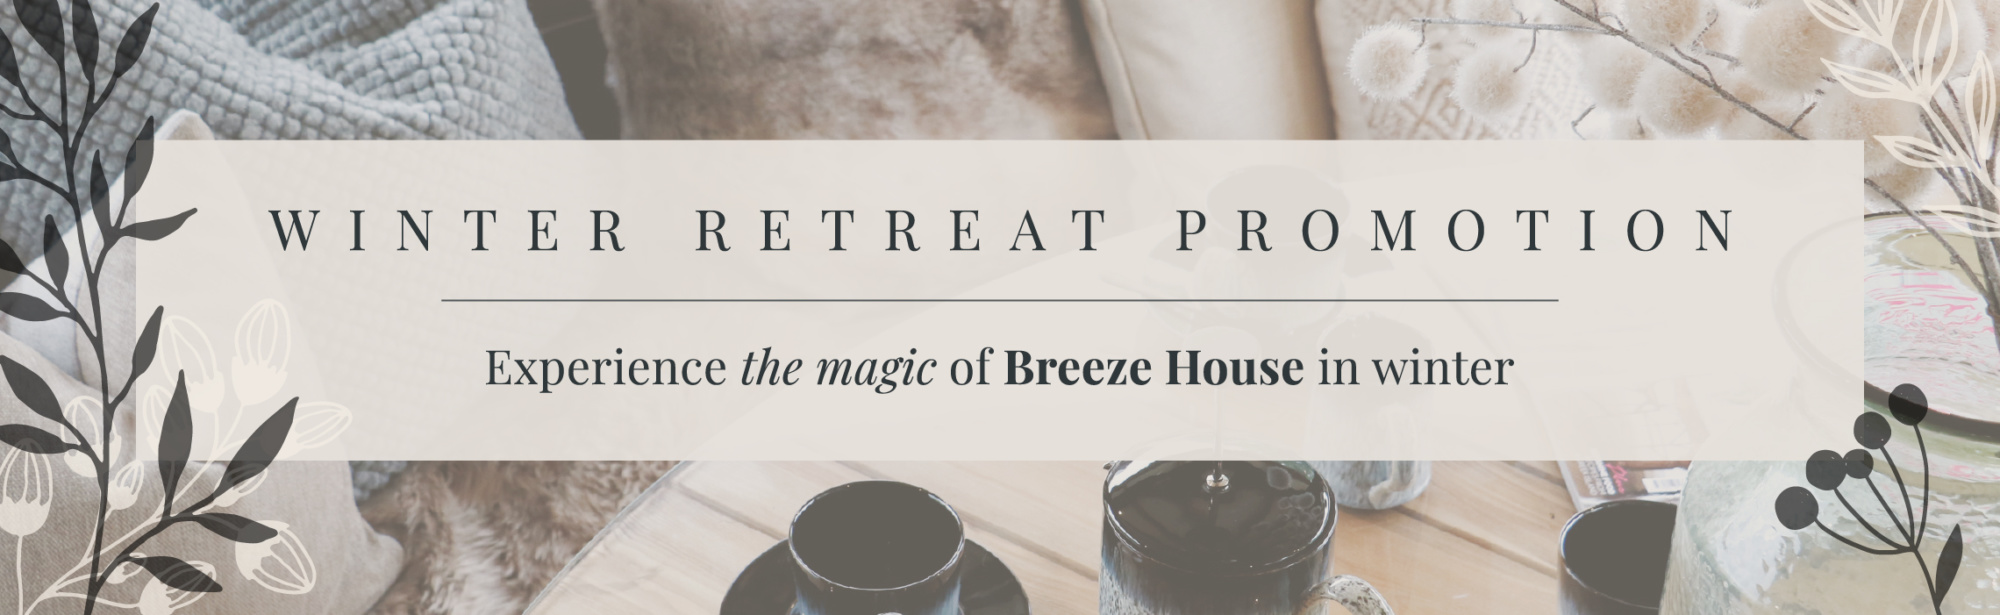 Winter Retreat Promotion. Experience the magic of Breeze House in winter.